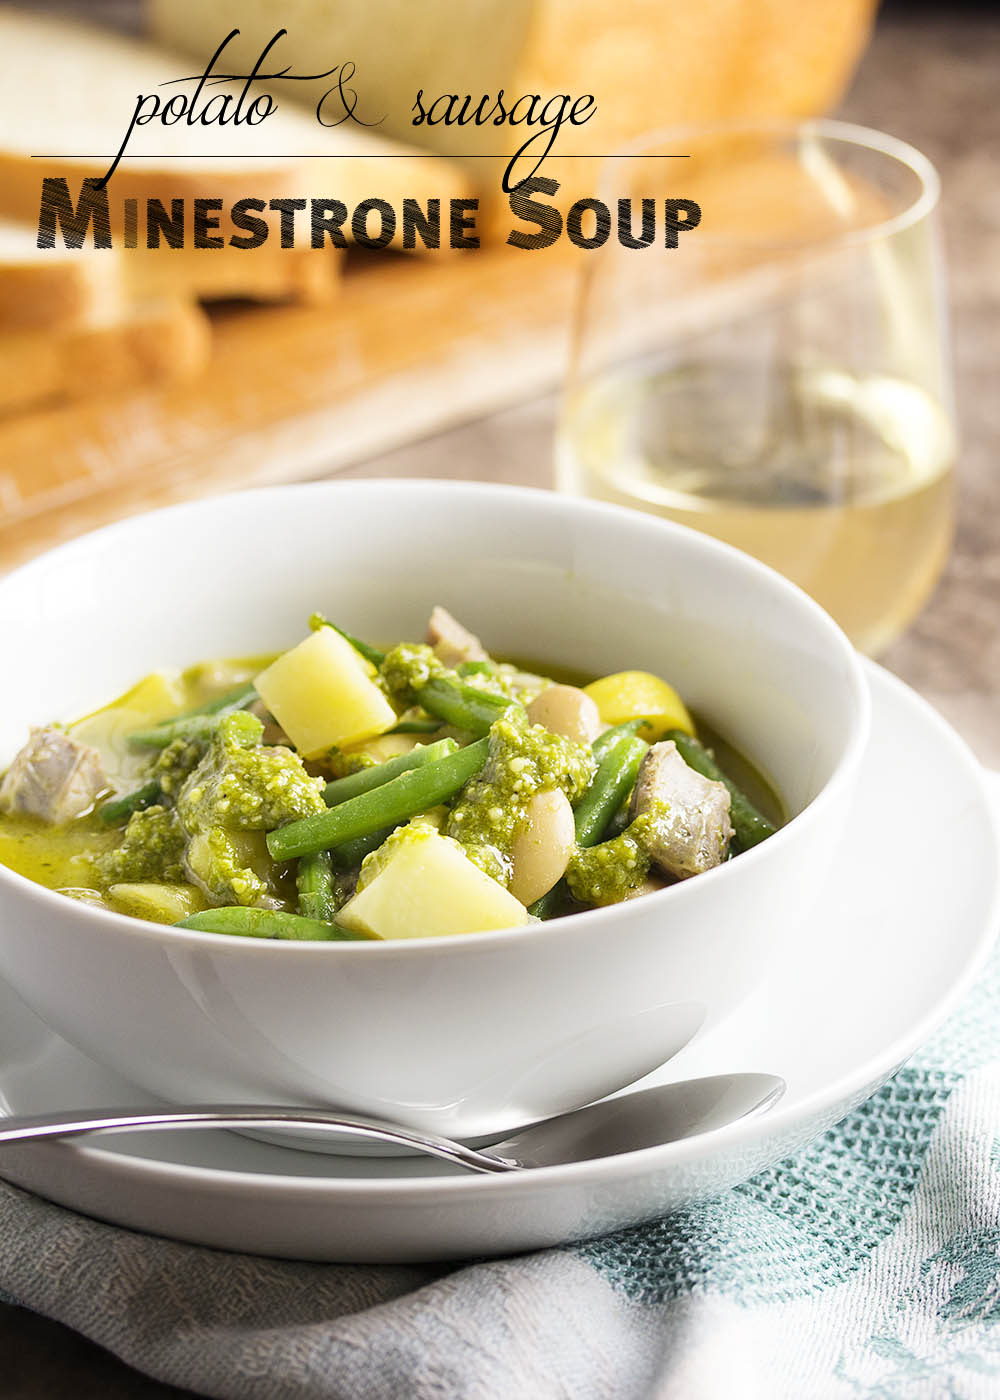 Potato and Sausage Minestrone Soup - An easy and classic minestrone soup filled with pesto, potatoes, vegetables, beans, and sausage. Even better the next day! Serve it with some crusty bread to dip in the the flavorful broth. | justalittlebitofbacon.com